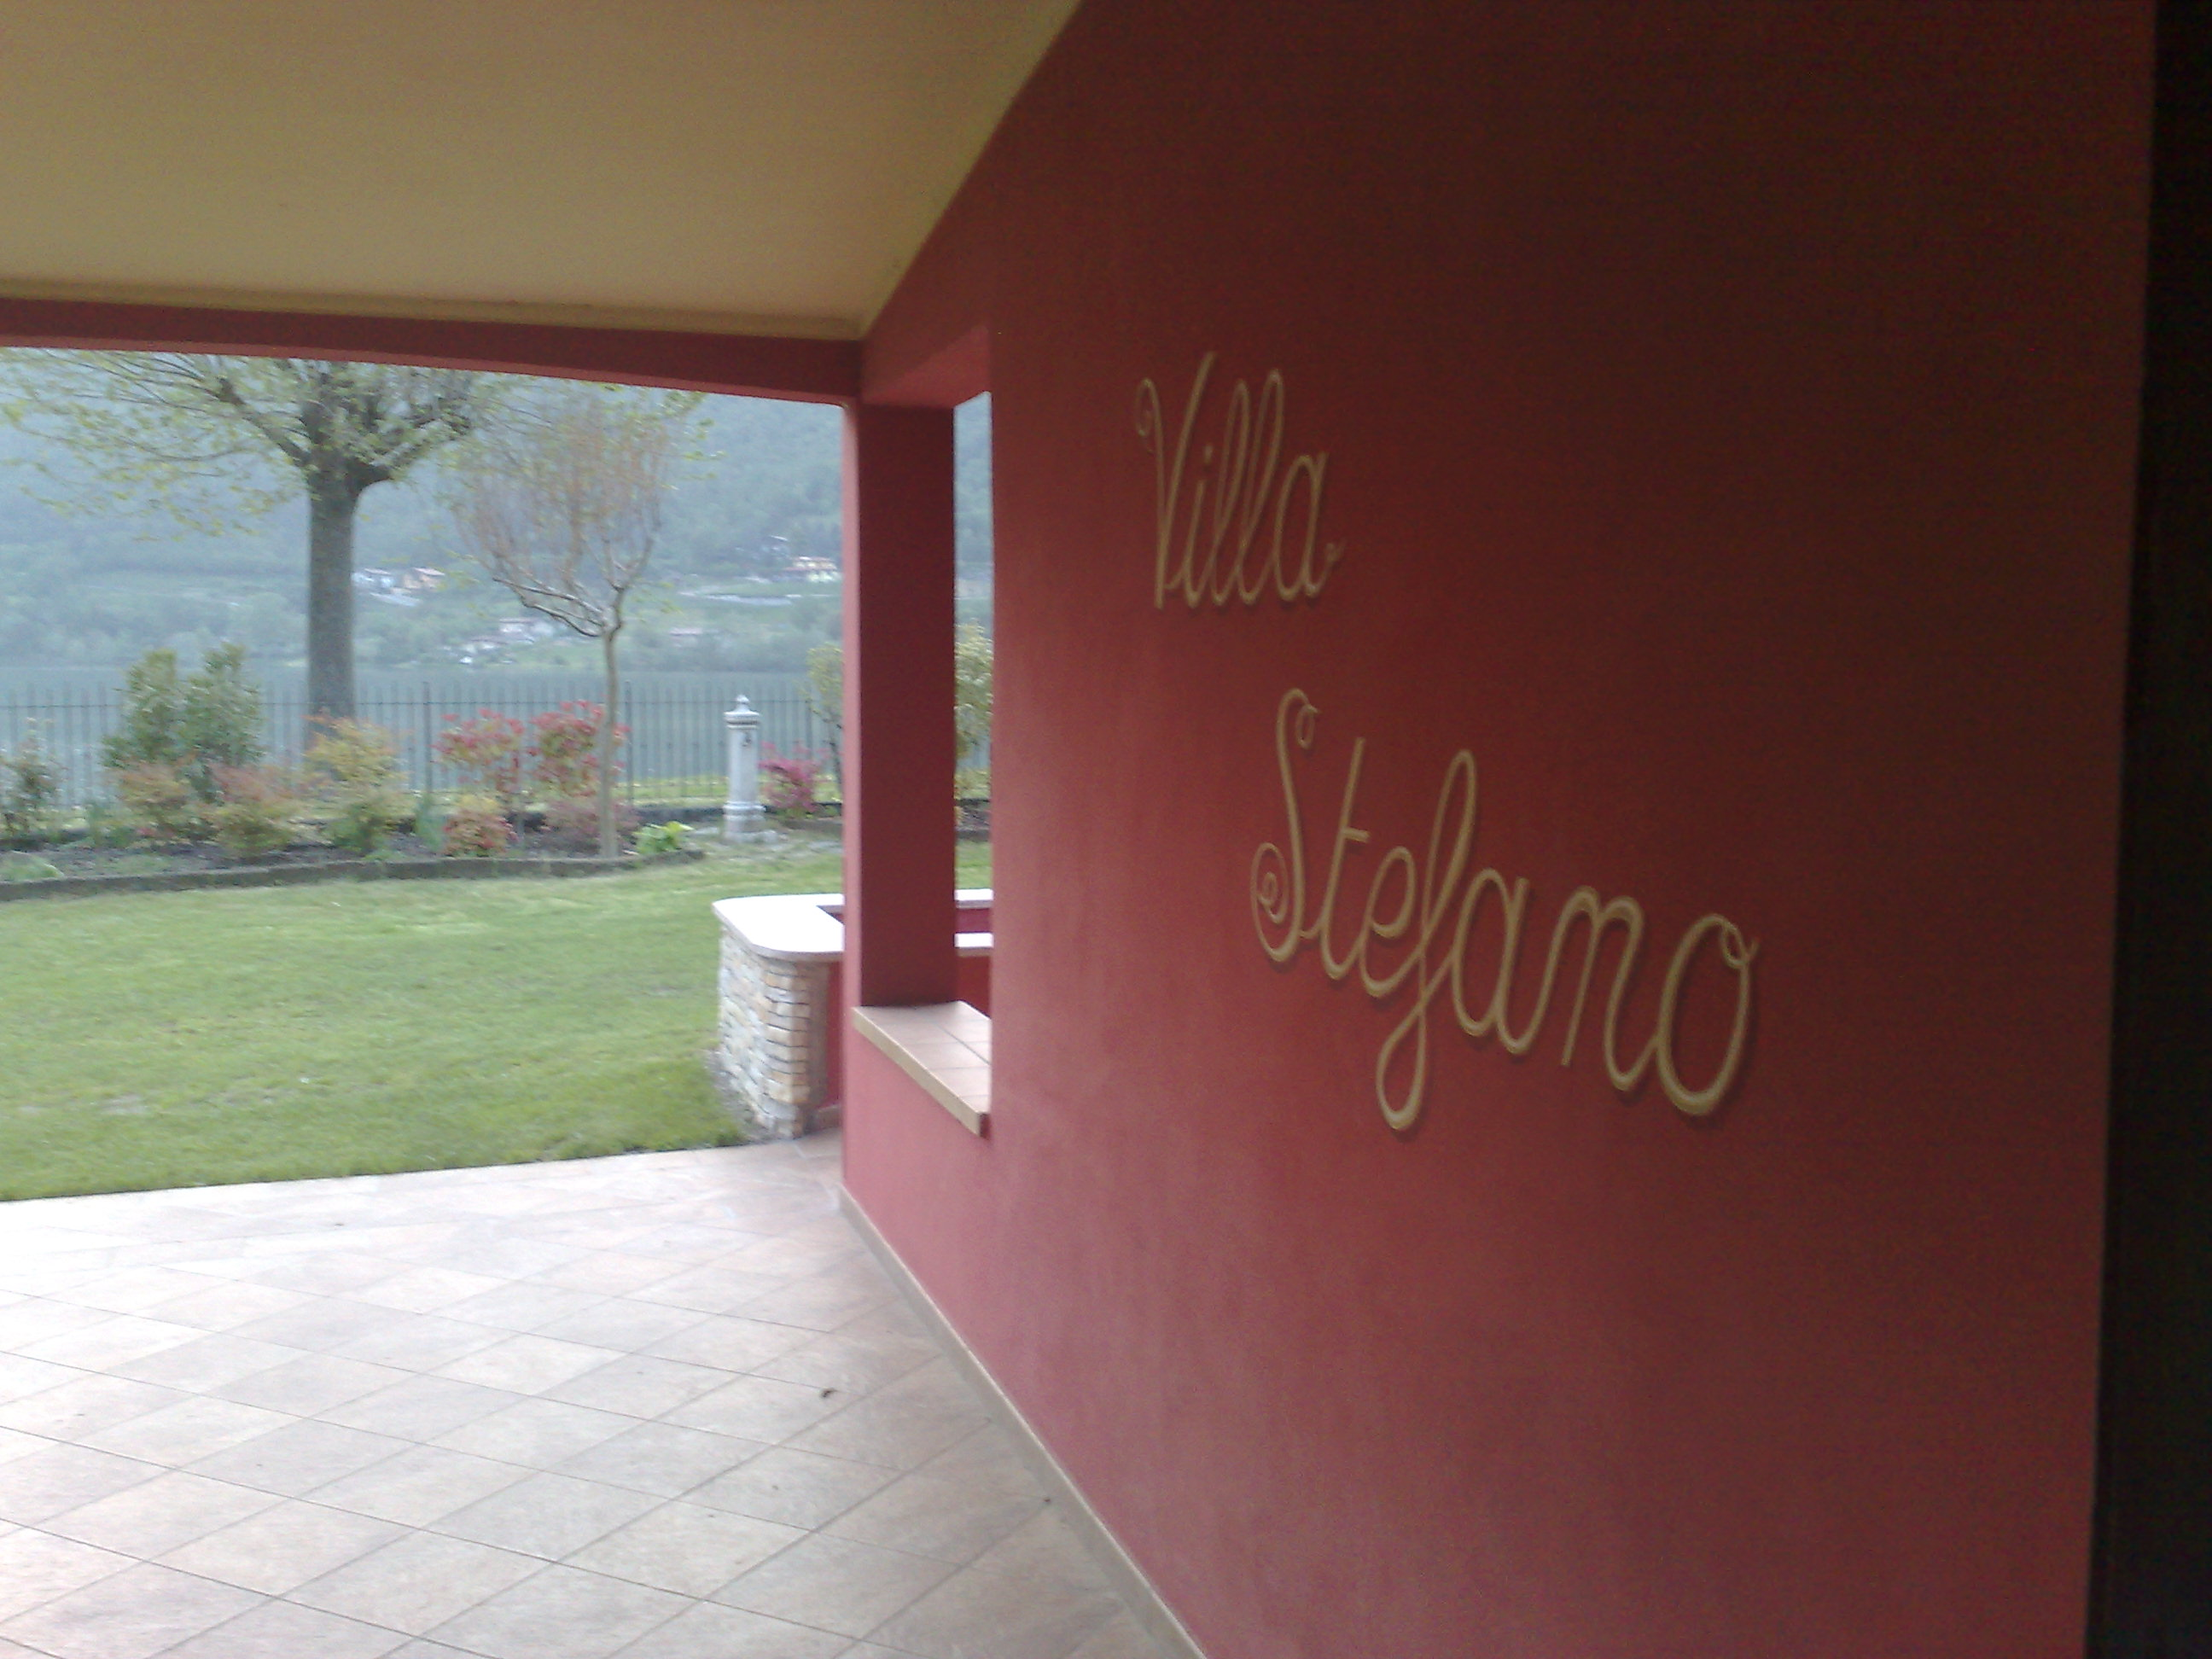 Villa Stefano lake view - Hotel Alpino - Idro lake